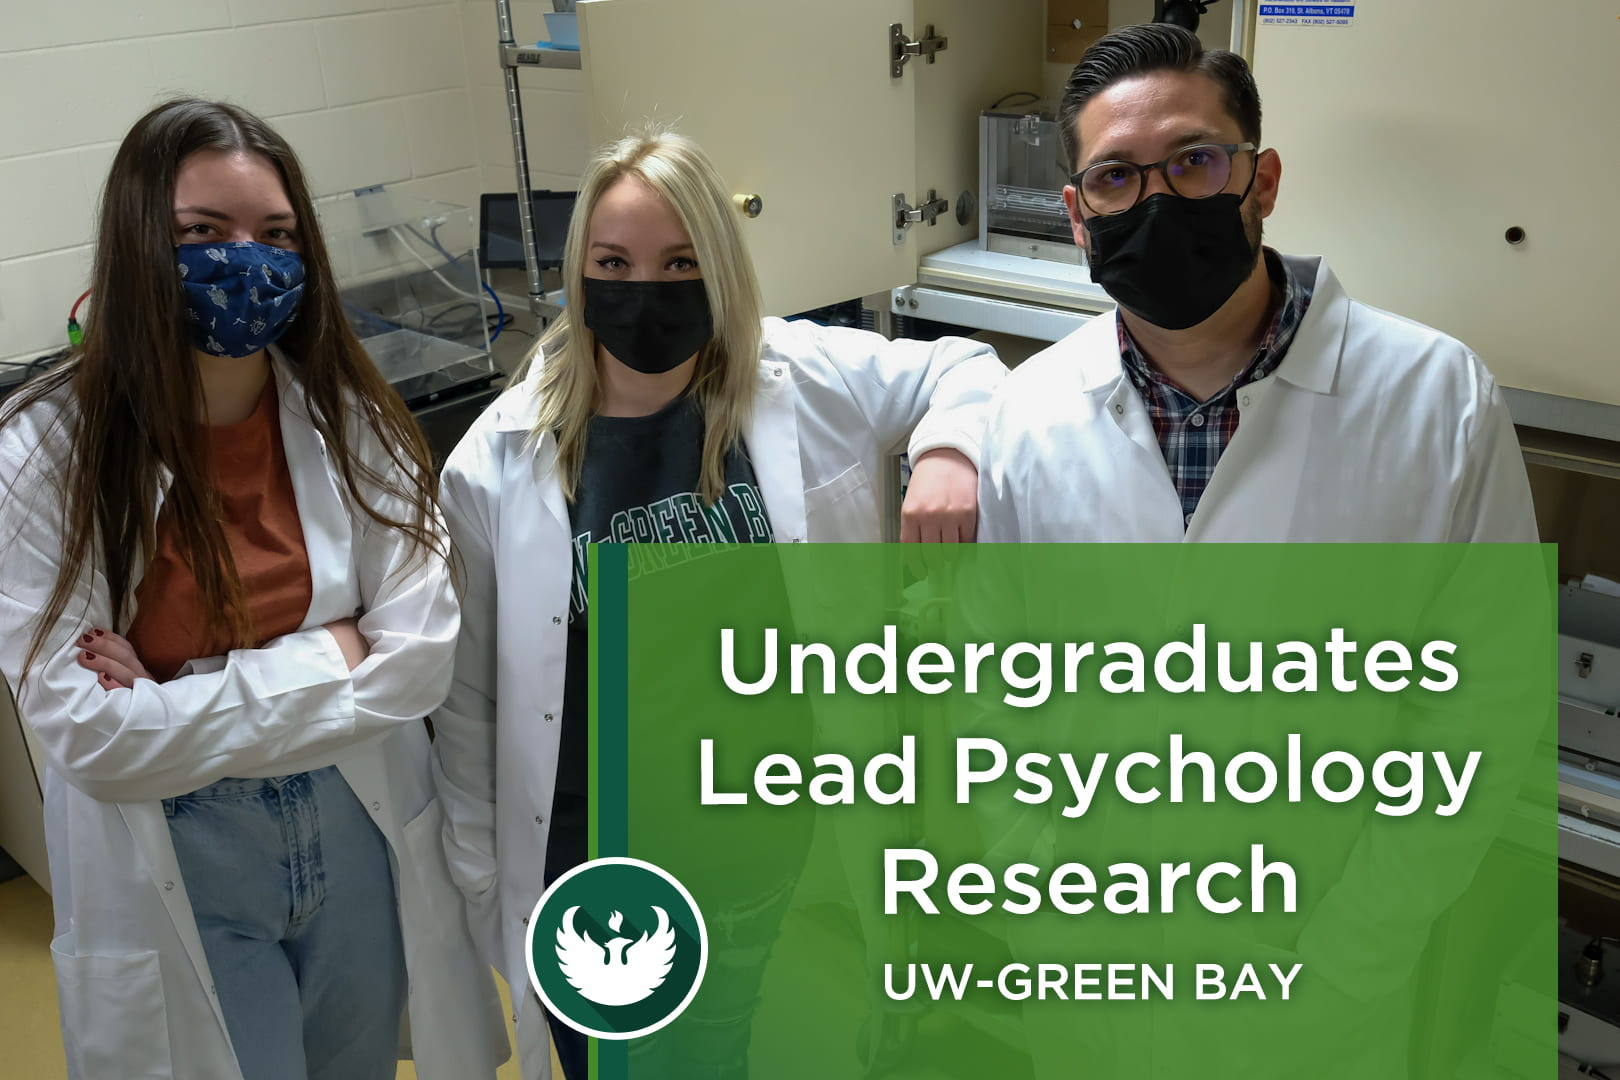 Two UW-Green Bay Psychology research students and Assistant Professor Todd Hillhouse pose for a photo inside the Pain and Addiction Neuropharmacology Lab (PANE Lab) in the Lab Sciences building at the Green Bay Campus.